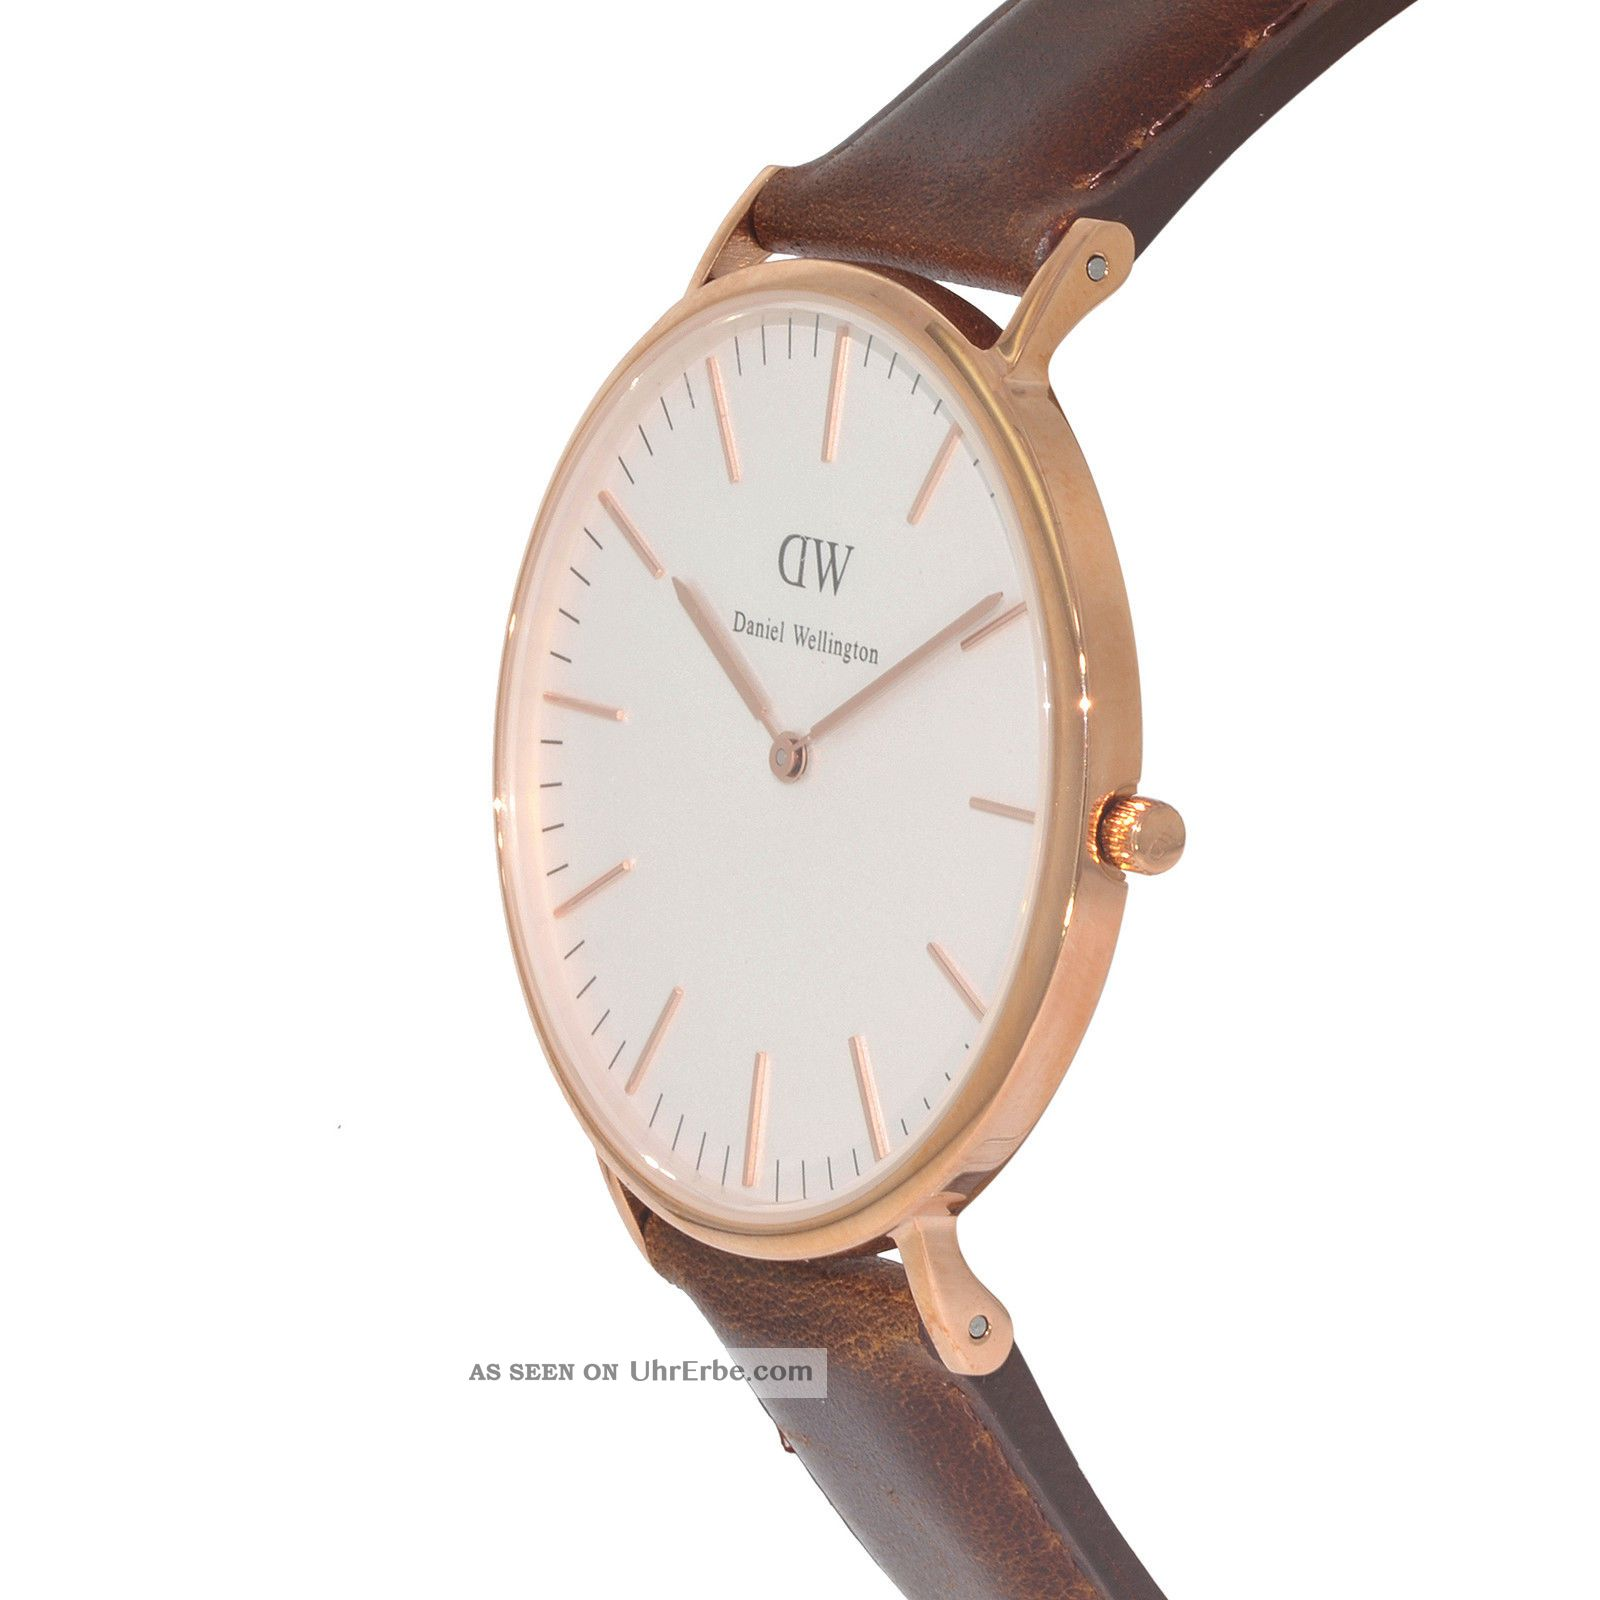 daniel wellington bristol rose gold herren uhr 0109dw. Black Bedroom Furniture Sets. Home Design Ideas